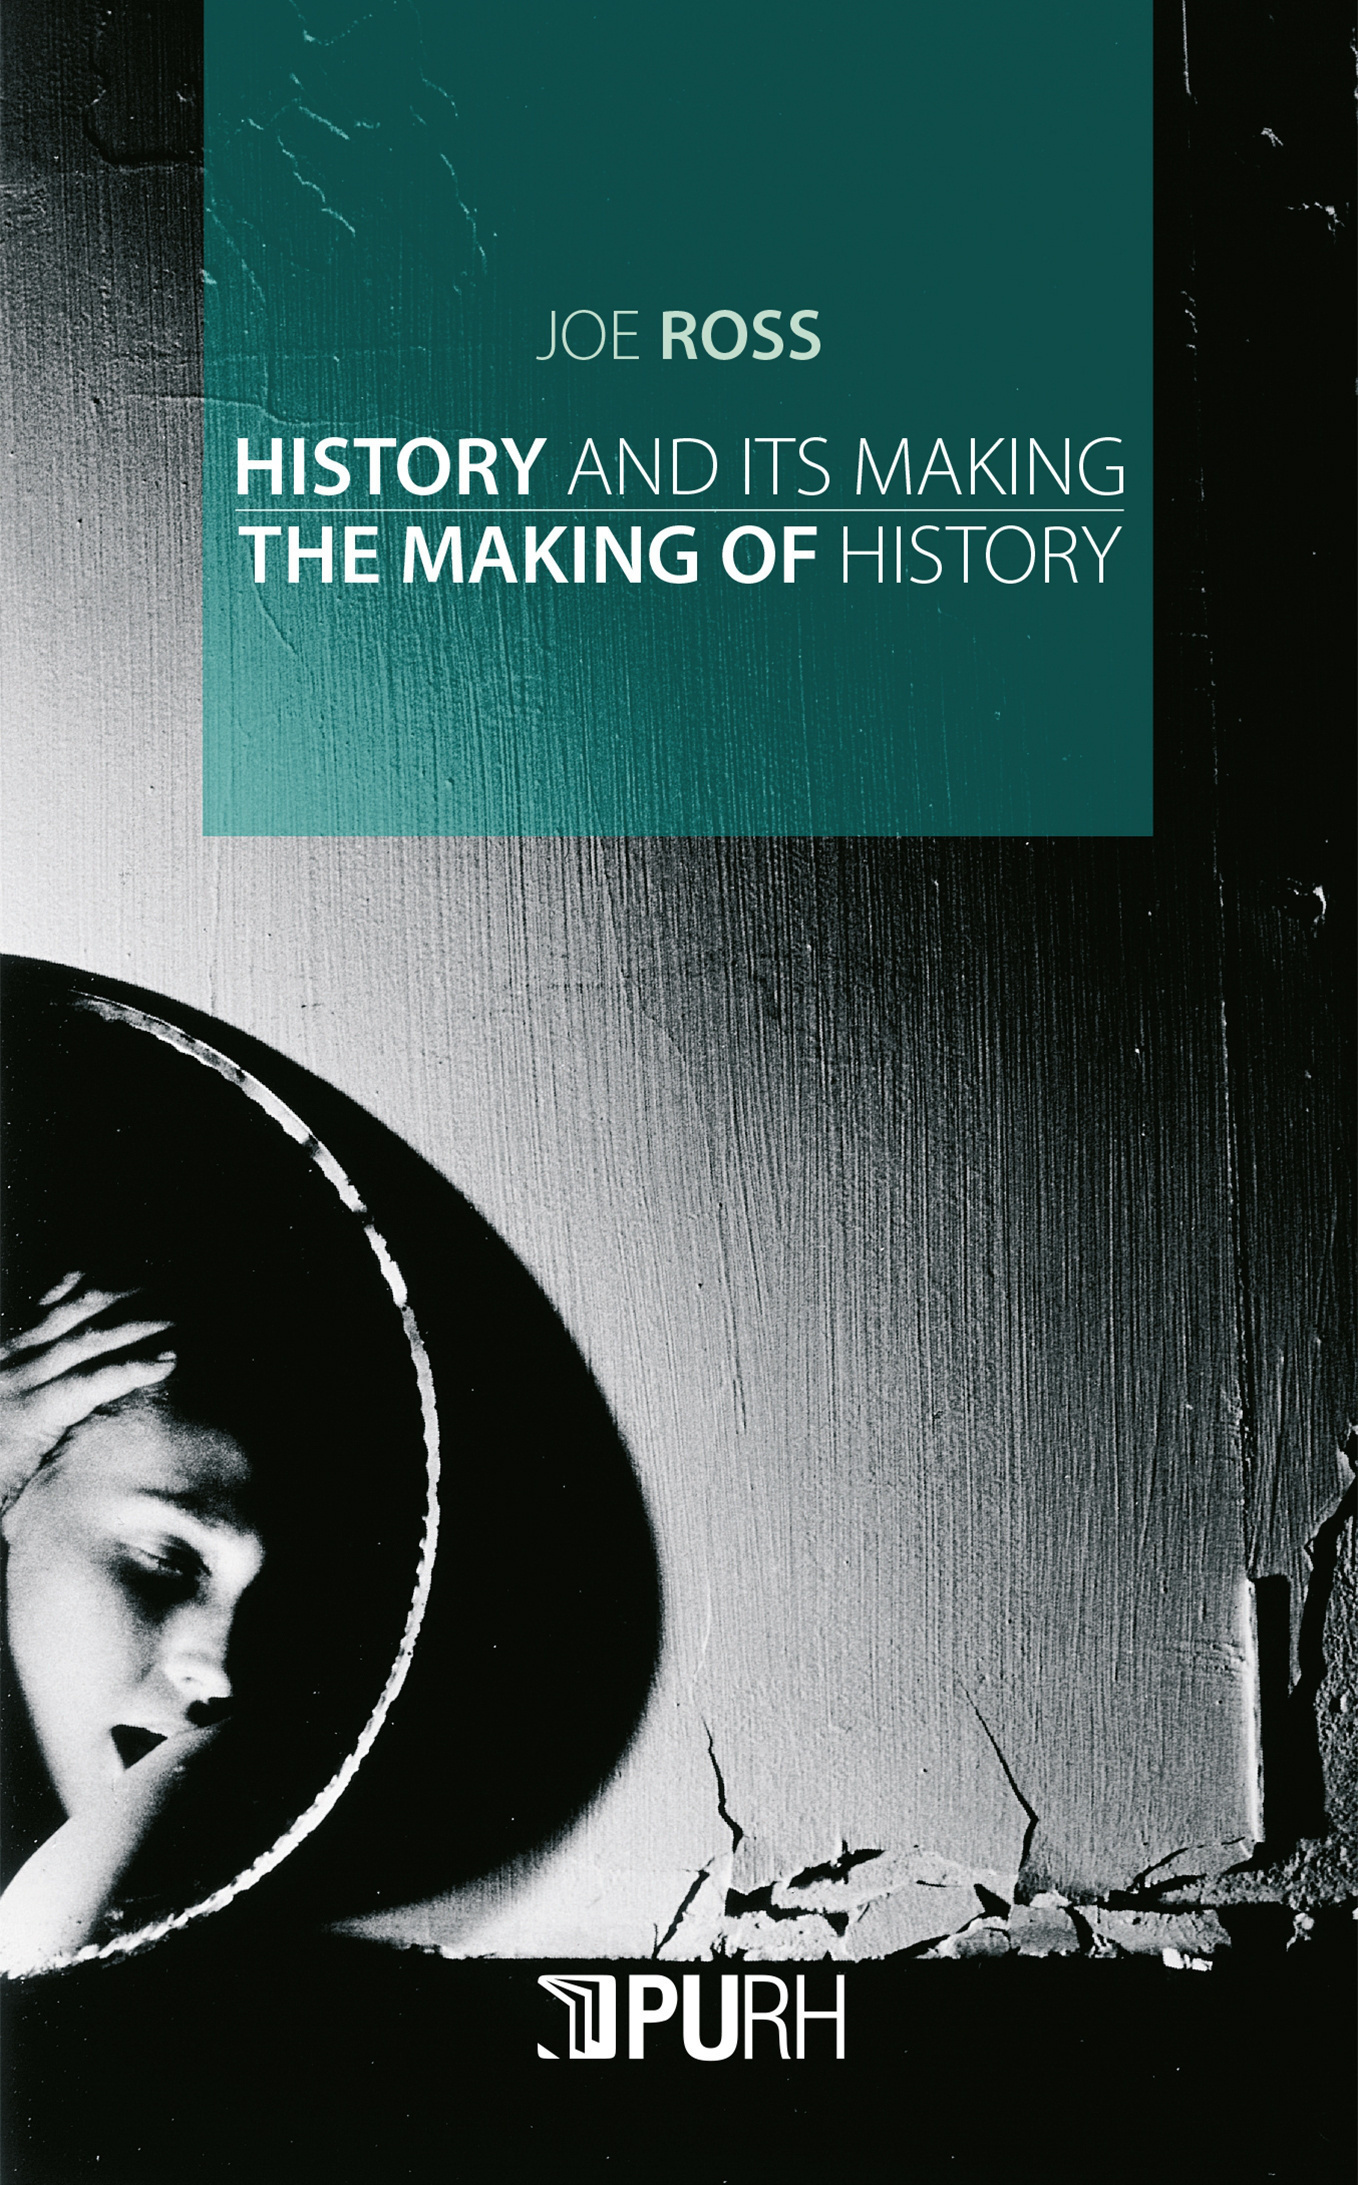 HISTORY AND ITS MAKING. THE MAKING OF HISTORY